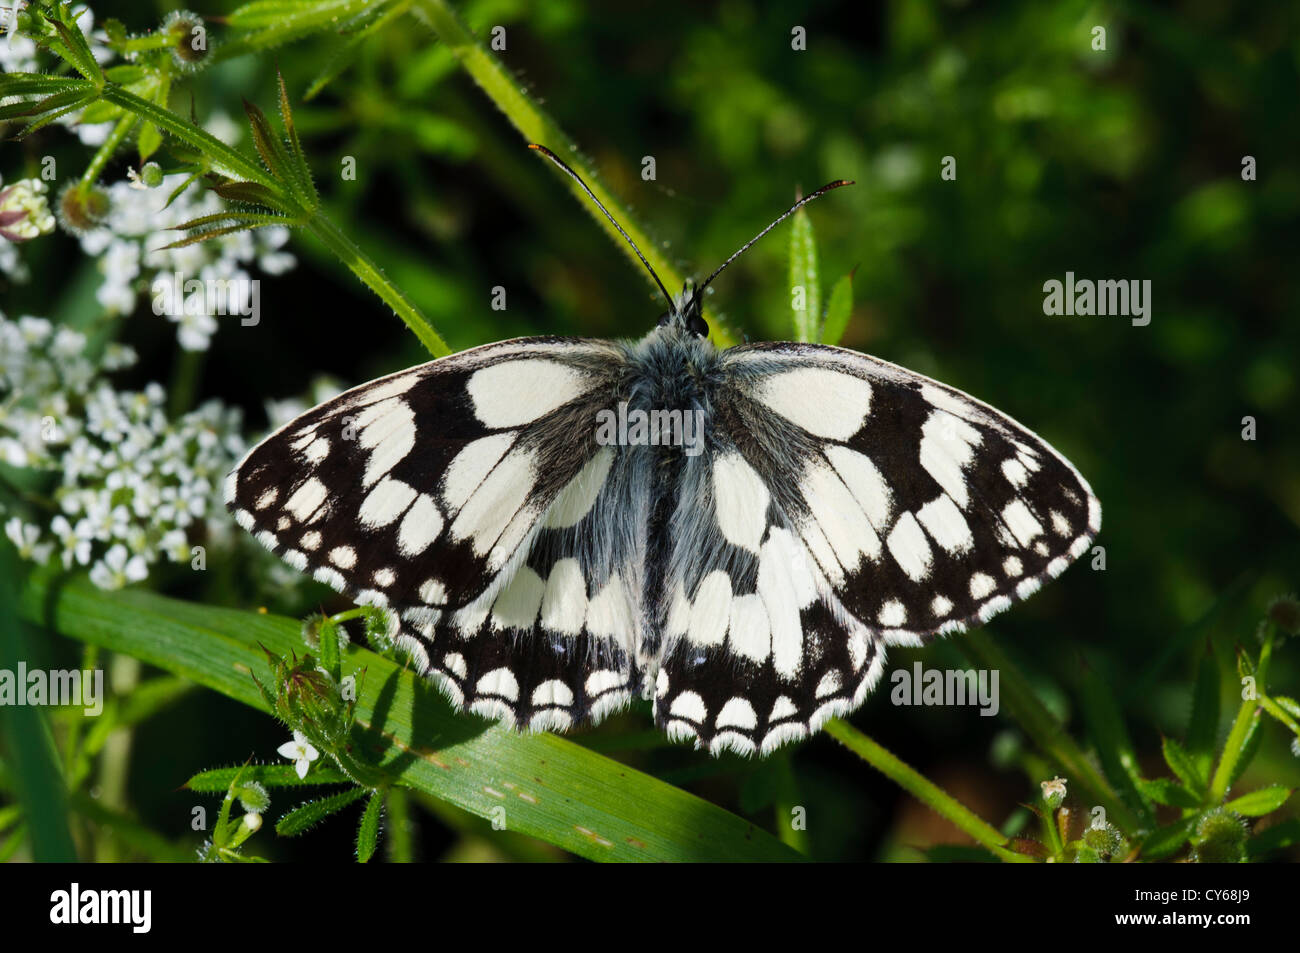 A marbled white butterfly (Melanargia galathea) perched on vegetation at Ivinghoe Beacon, Buckinghamshire. june. - Stock Image